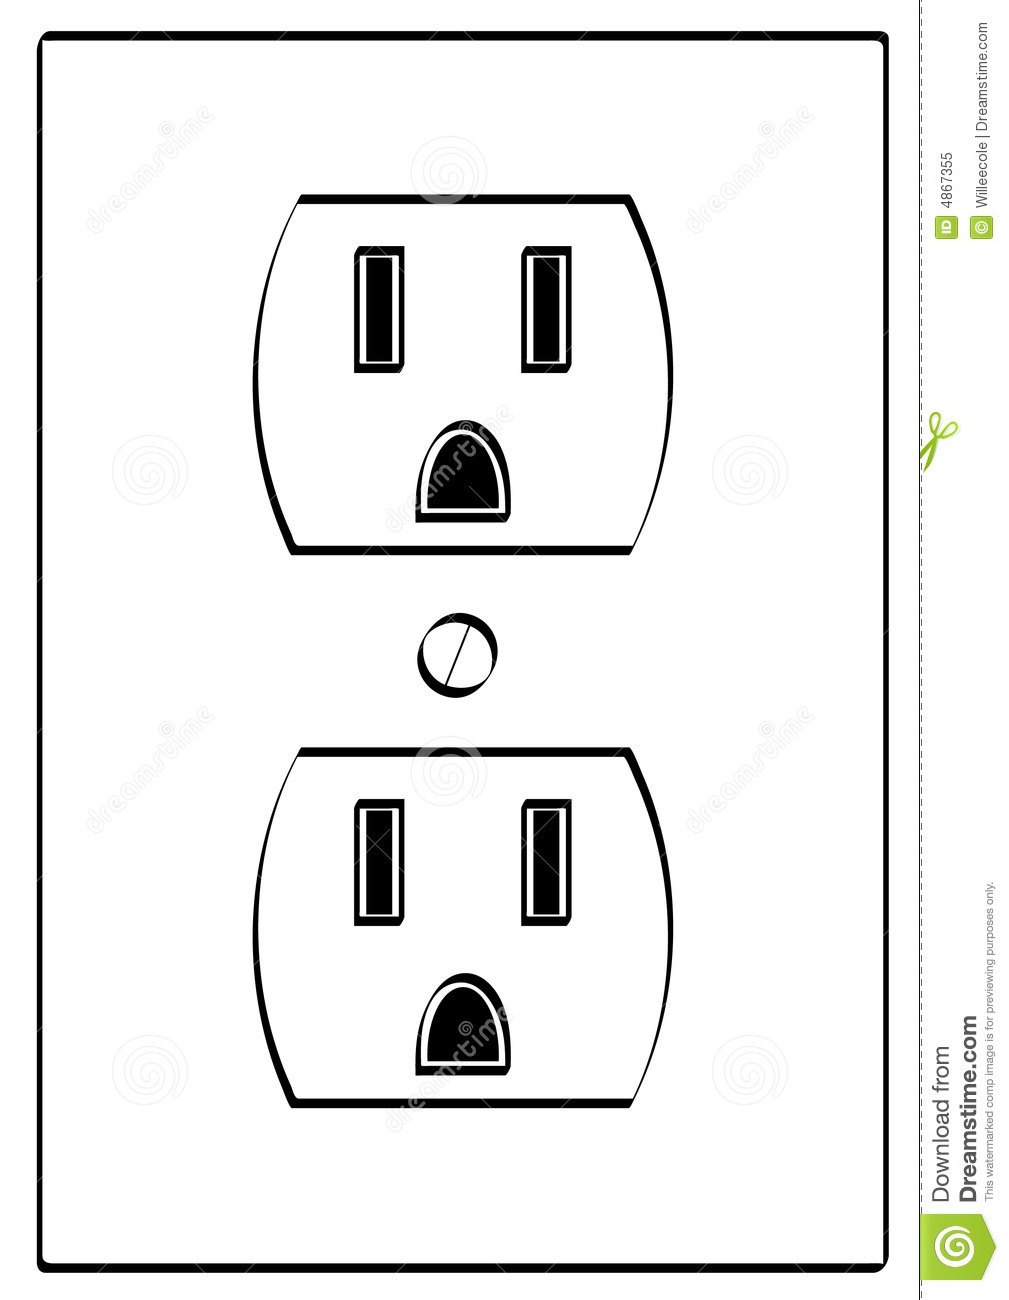 Electric Vehicles Global Market Opportunities And New Business Models as well BEEKA double BS52 adaptor furthermore Static Electricity Clipart additionally Exorcise Phantom Loads And Energy V ires With Smart Strips also 2018 Bmw I3s Sportier Ev. on electric outlet plug